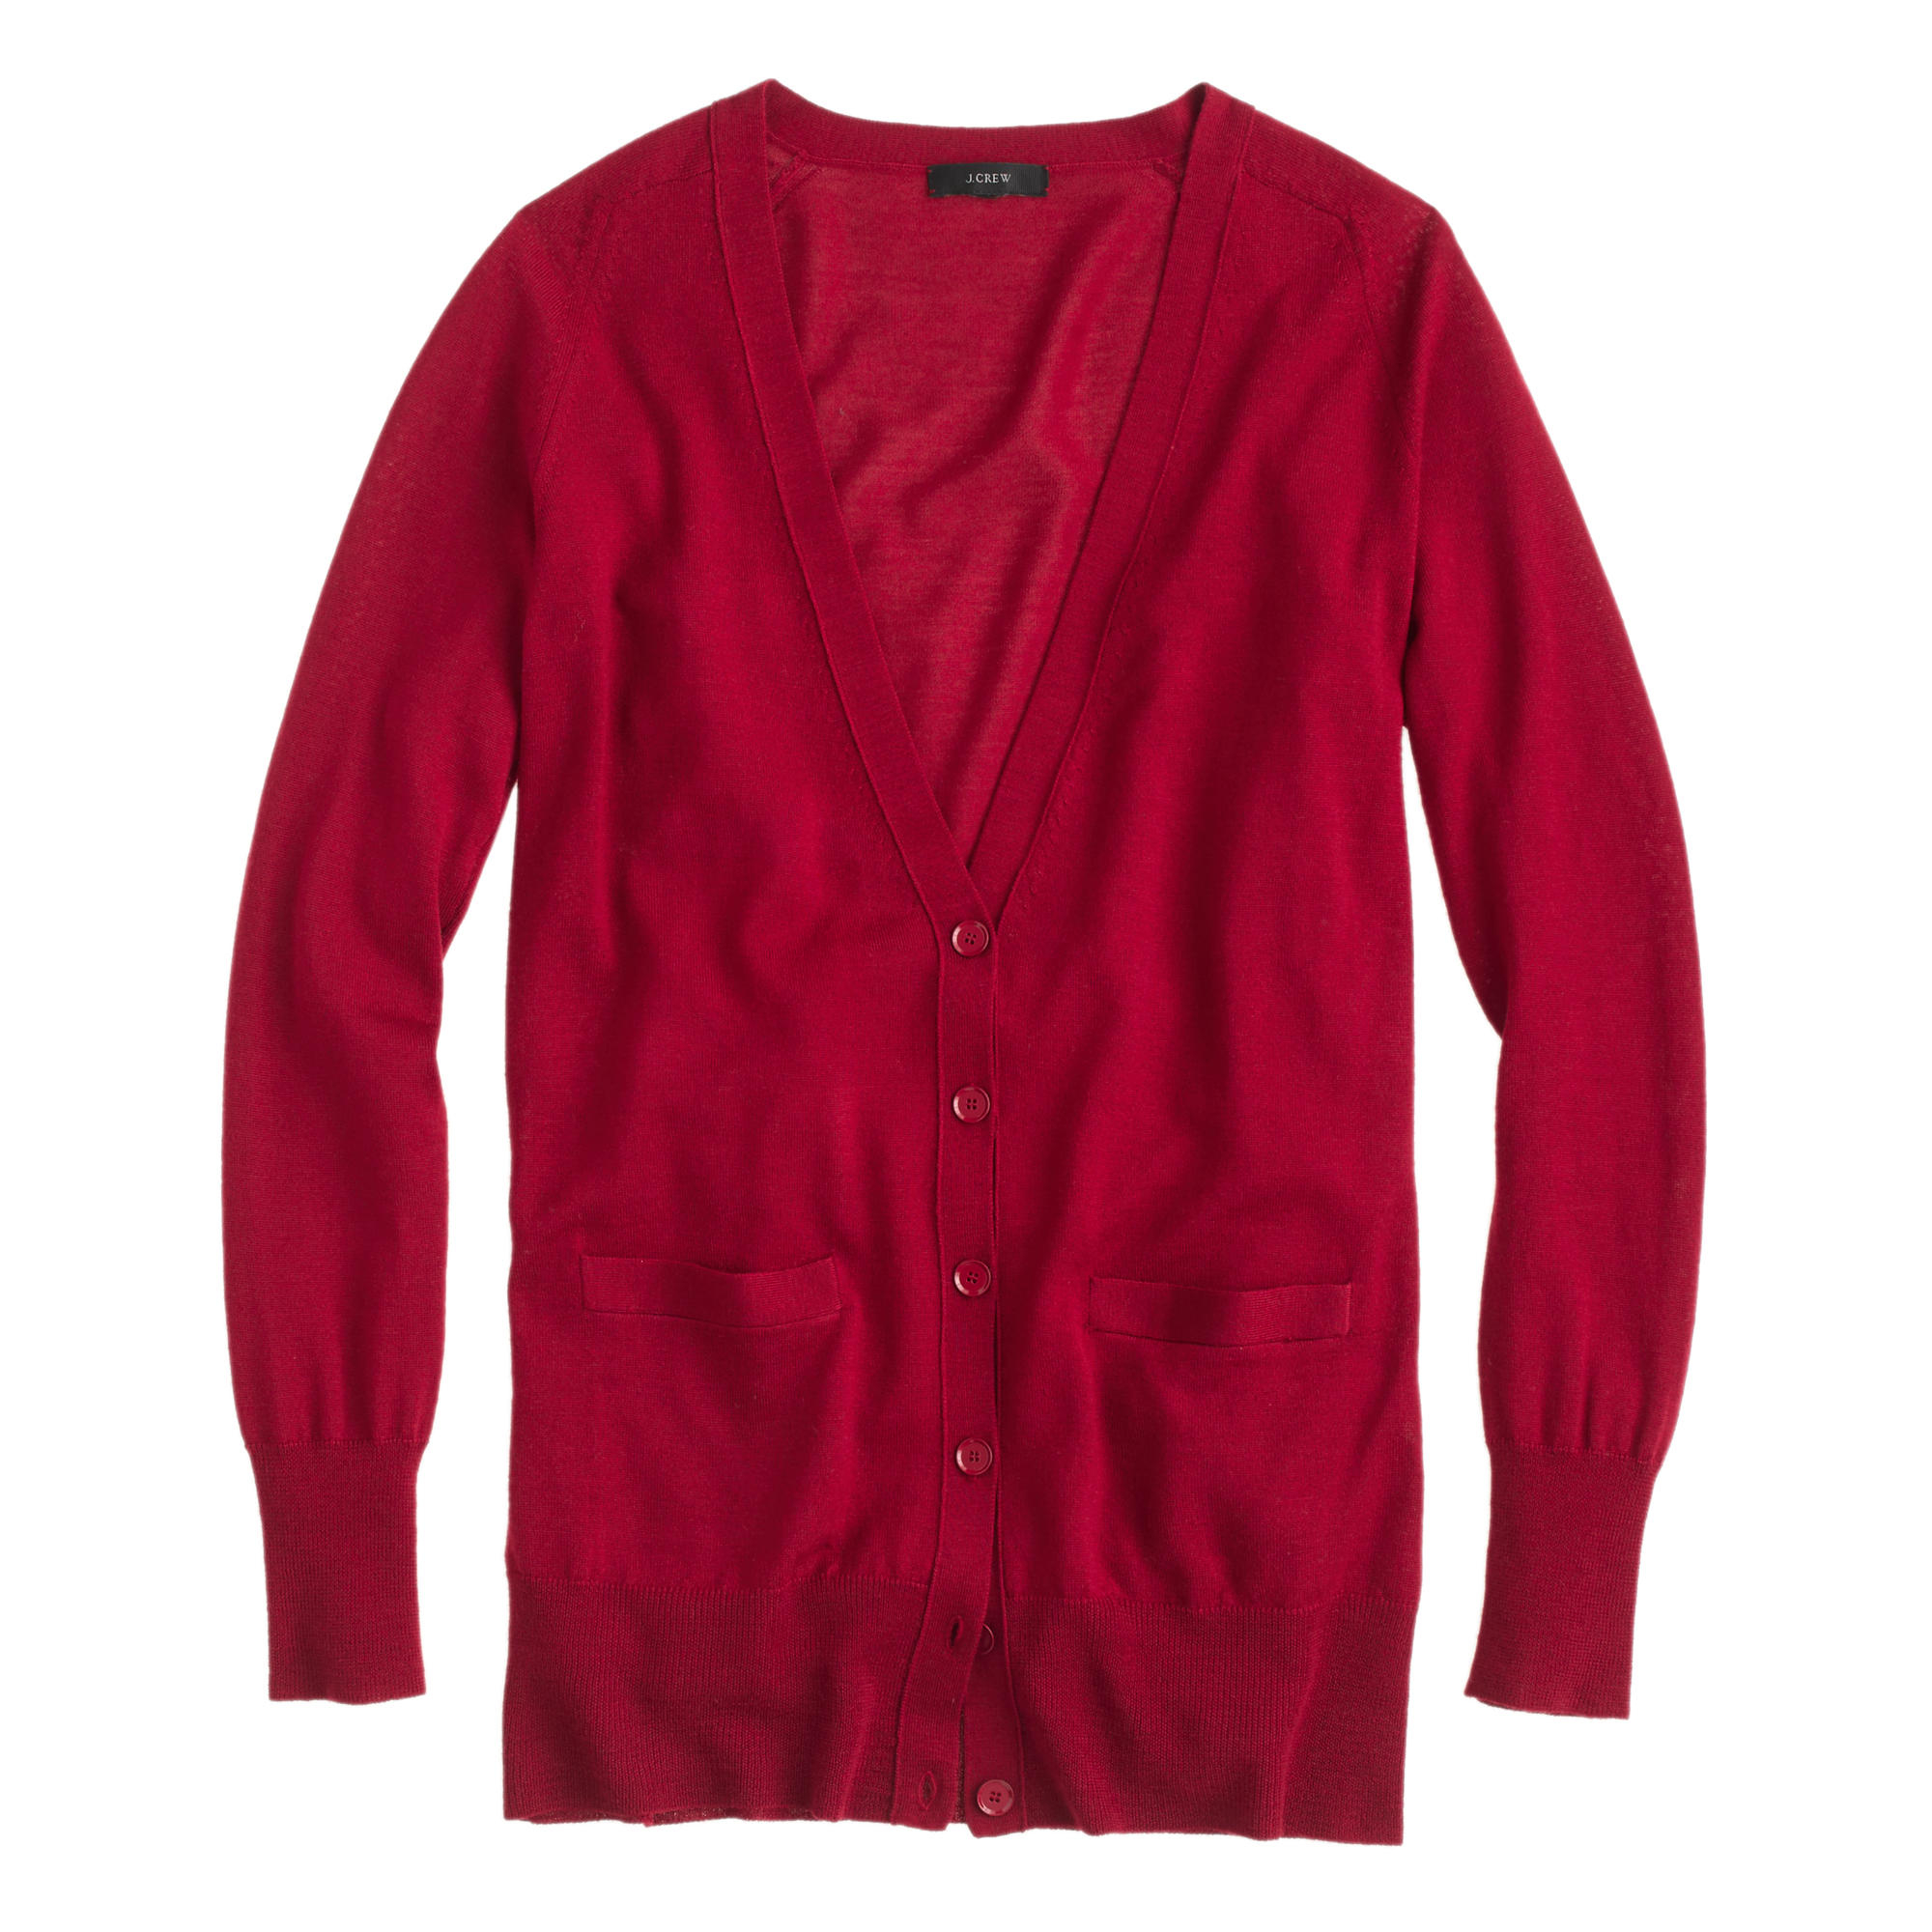 J.crew Classic Merino Wool Long Cardigan Sweater in Red | Lyst